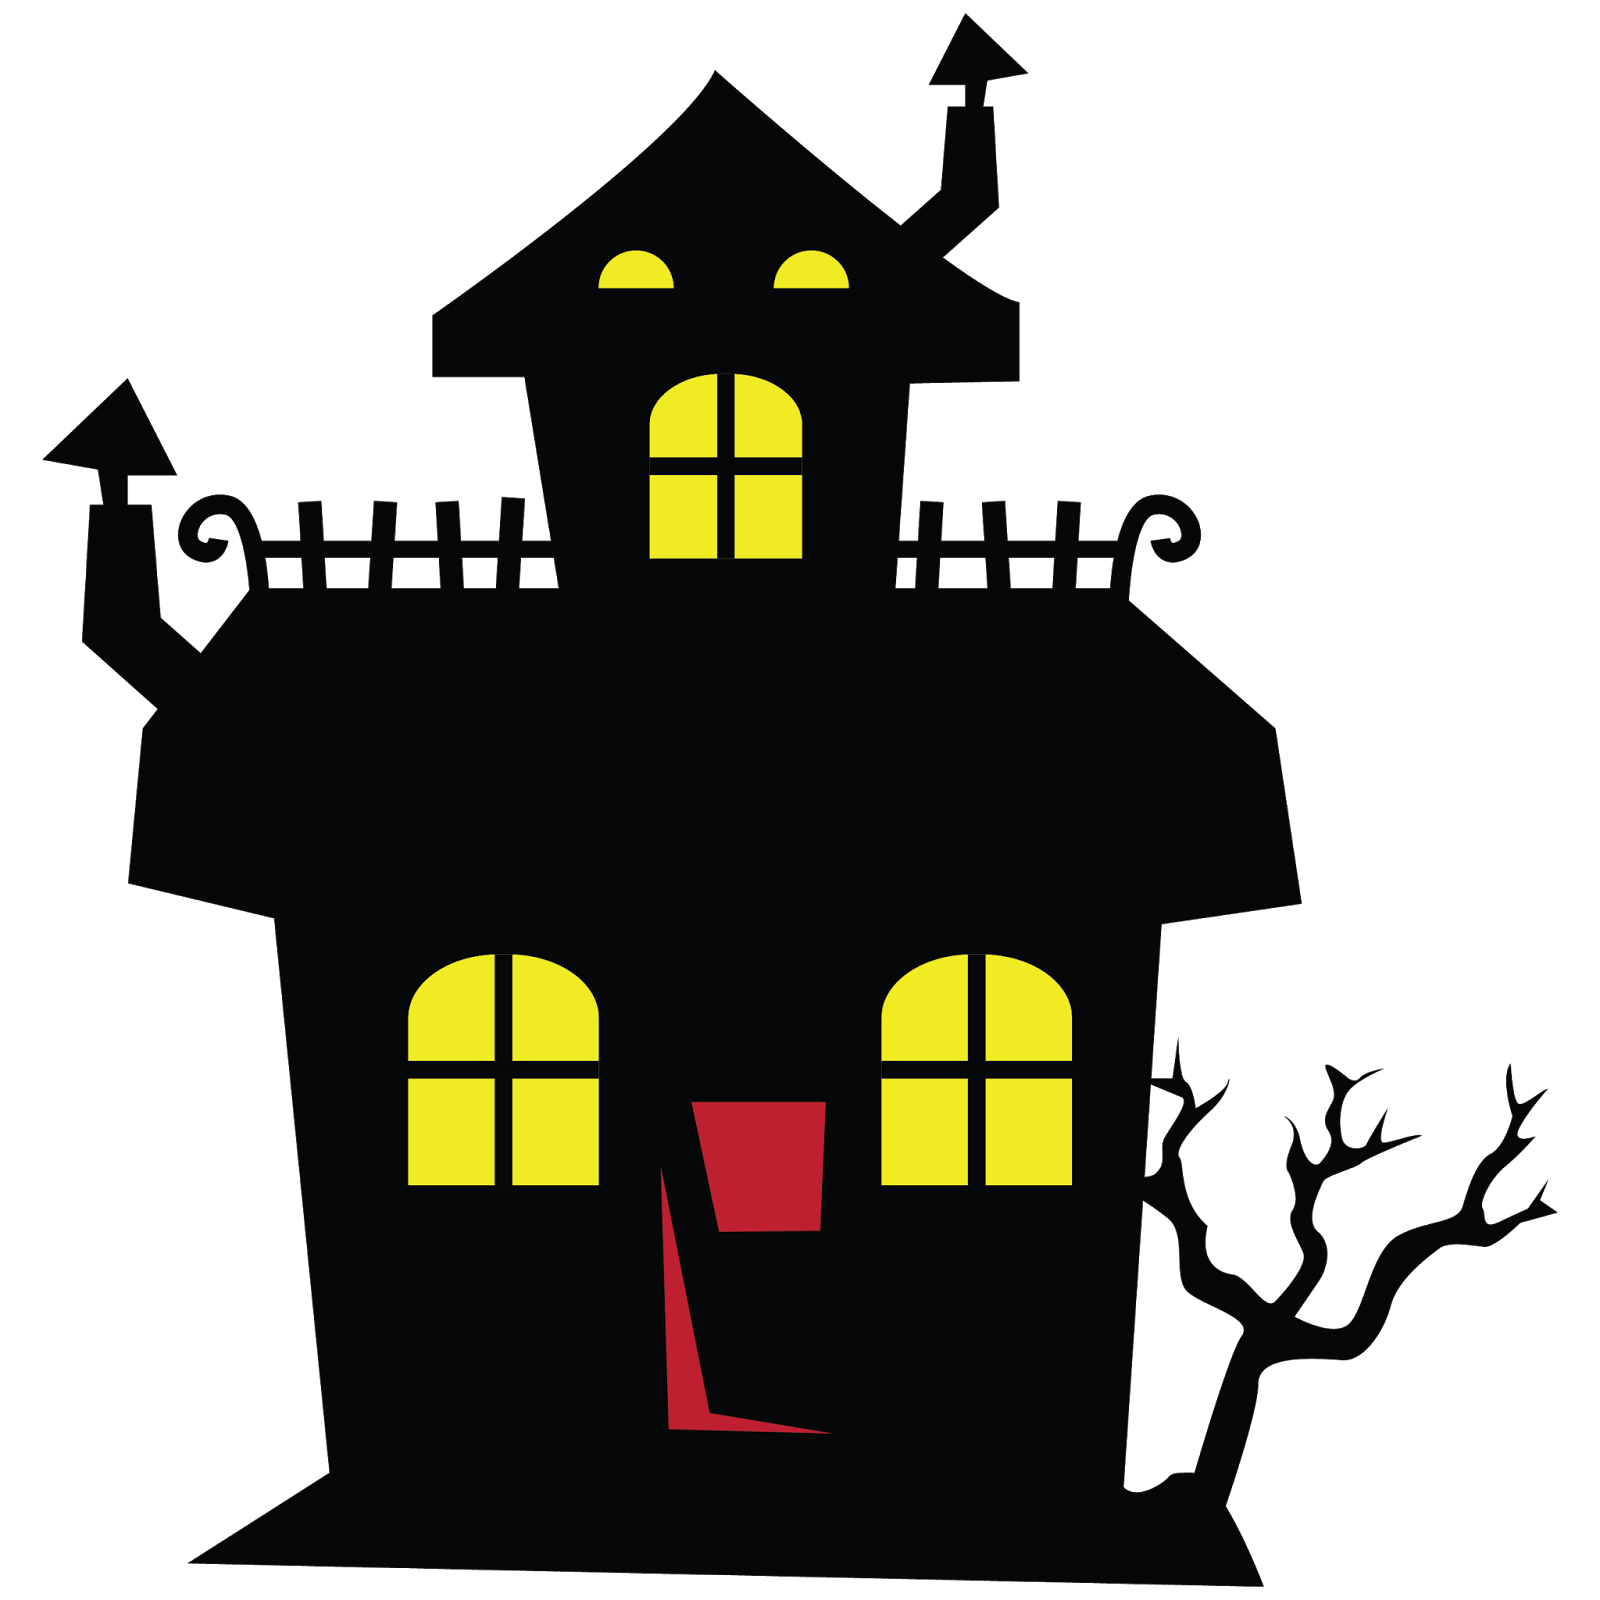 Haunted House Clipart Png - ClipartFest-Haunted house clipart png - ClipartFest-13